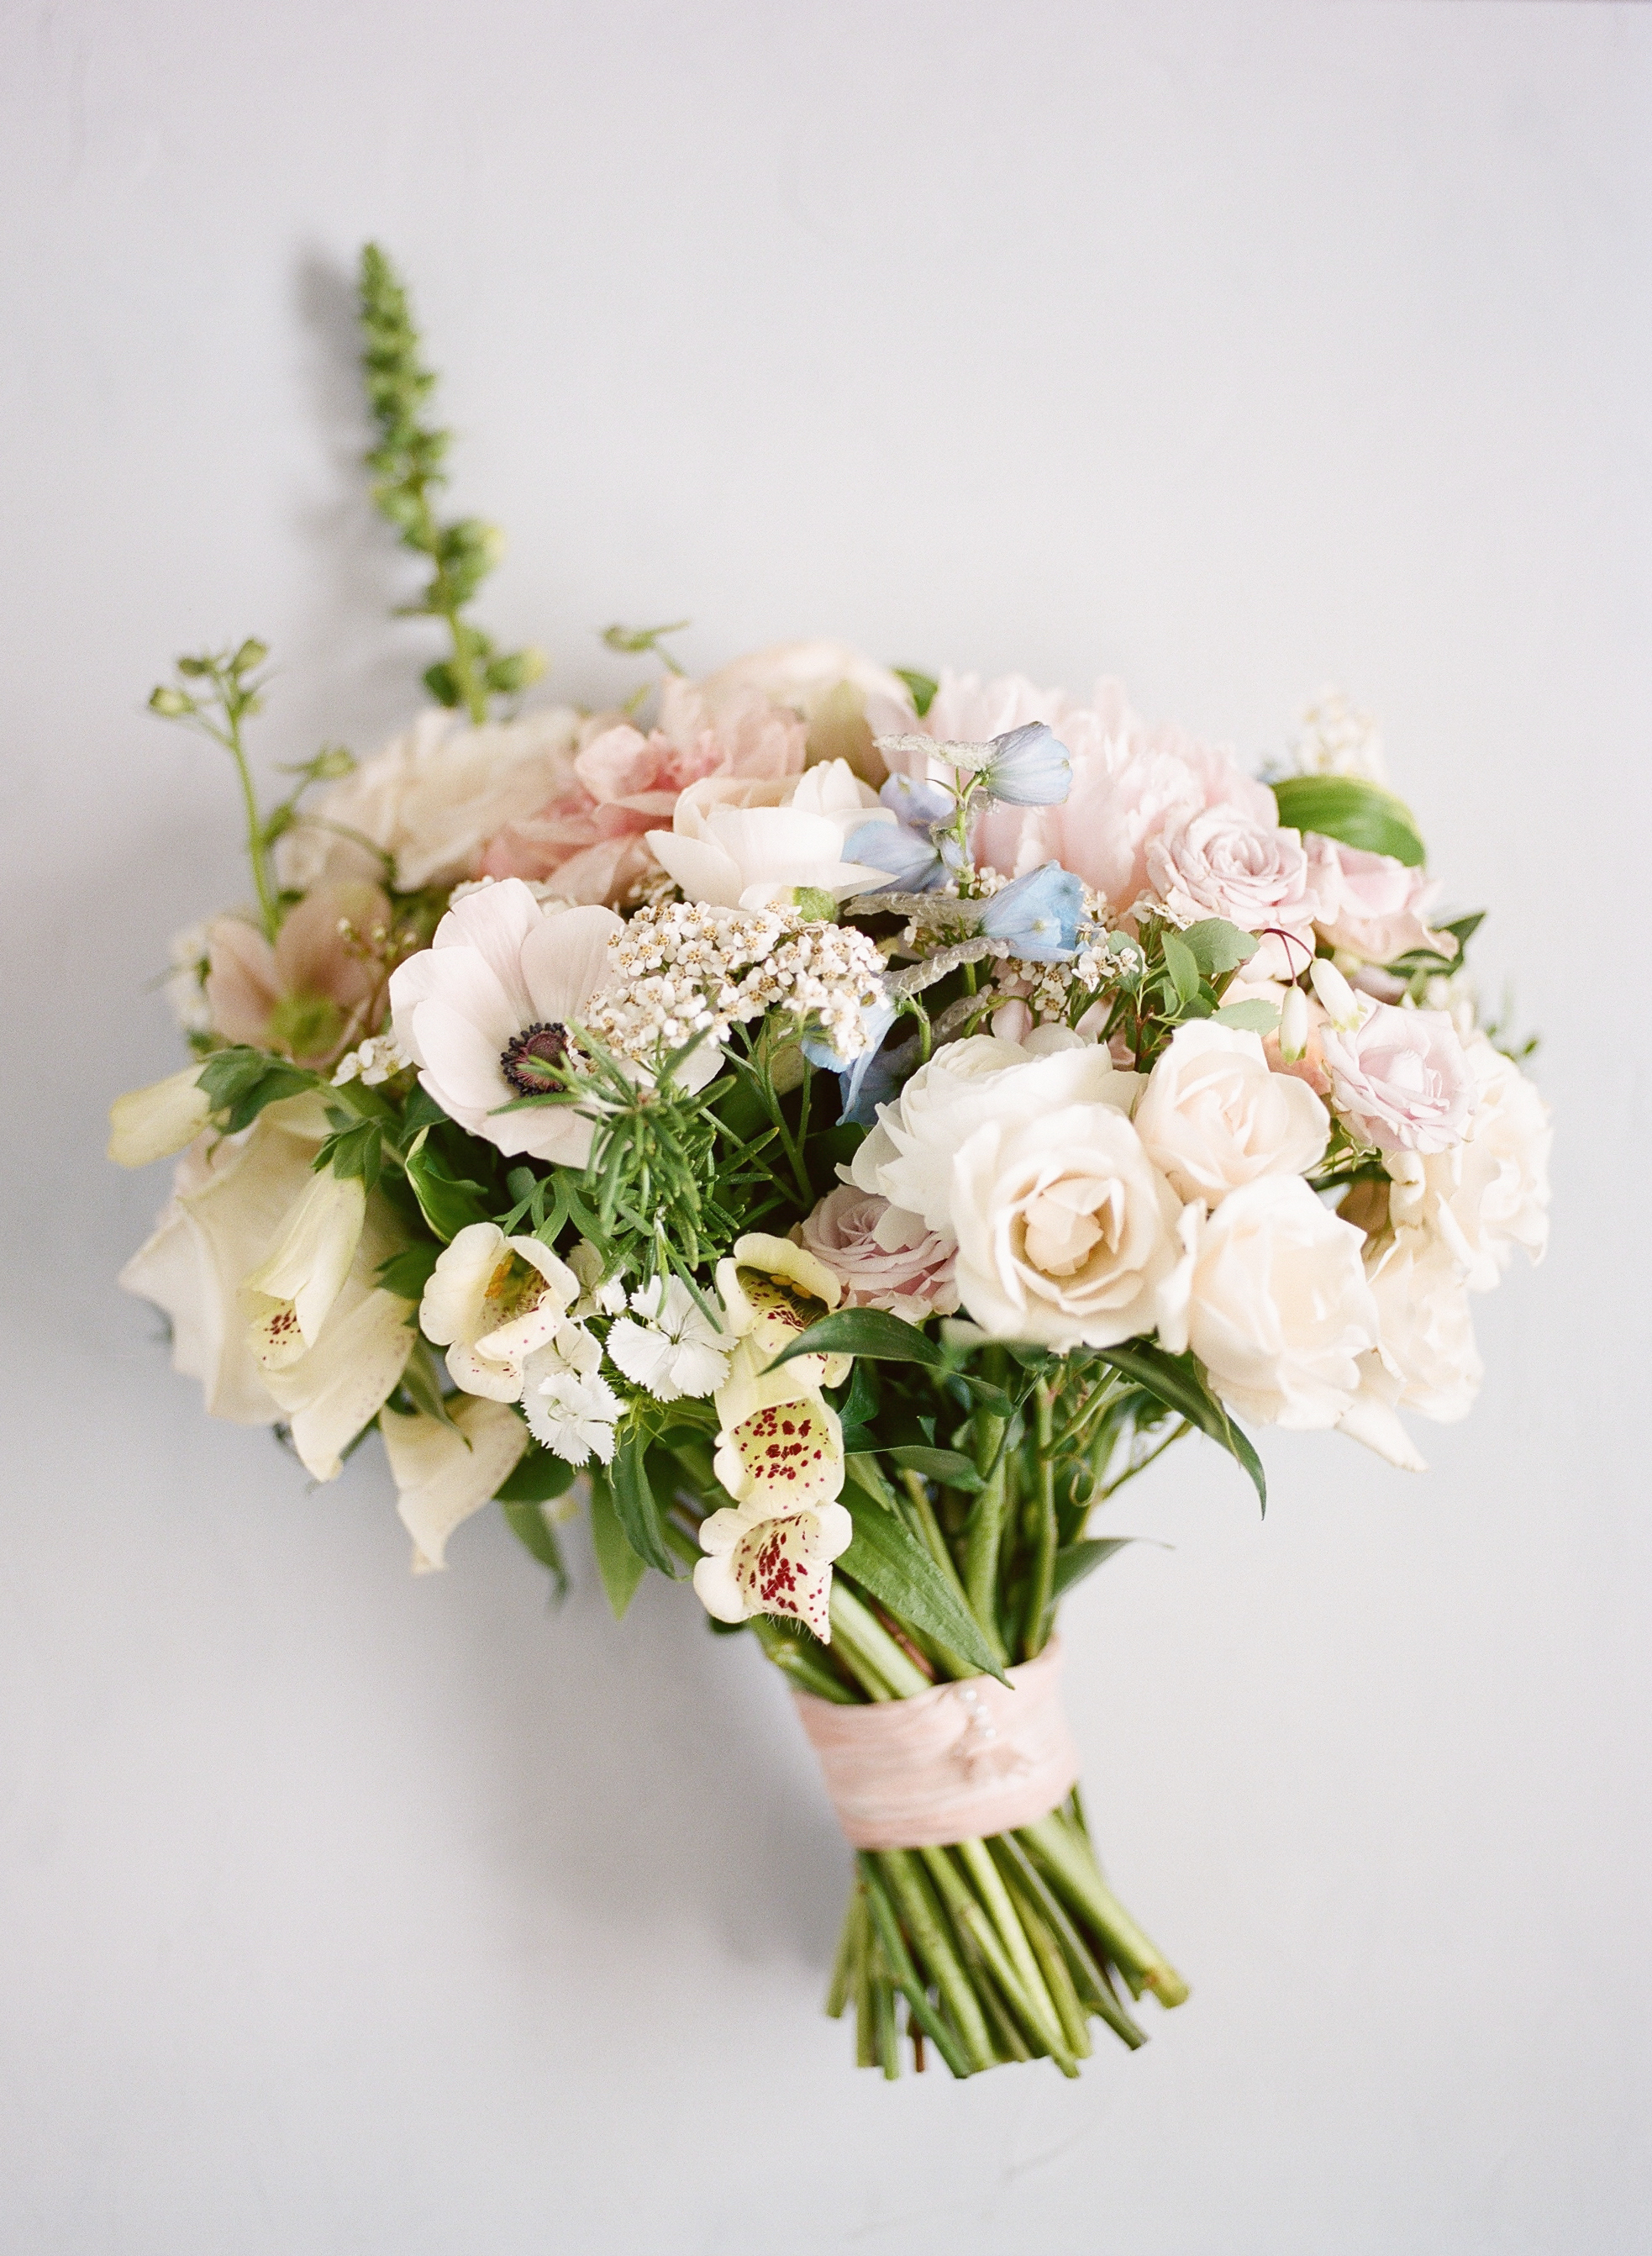 PASTEL TONE WEDDING BOUQUET